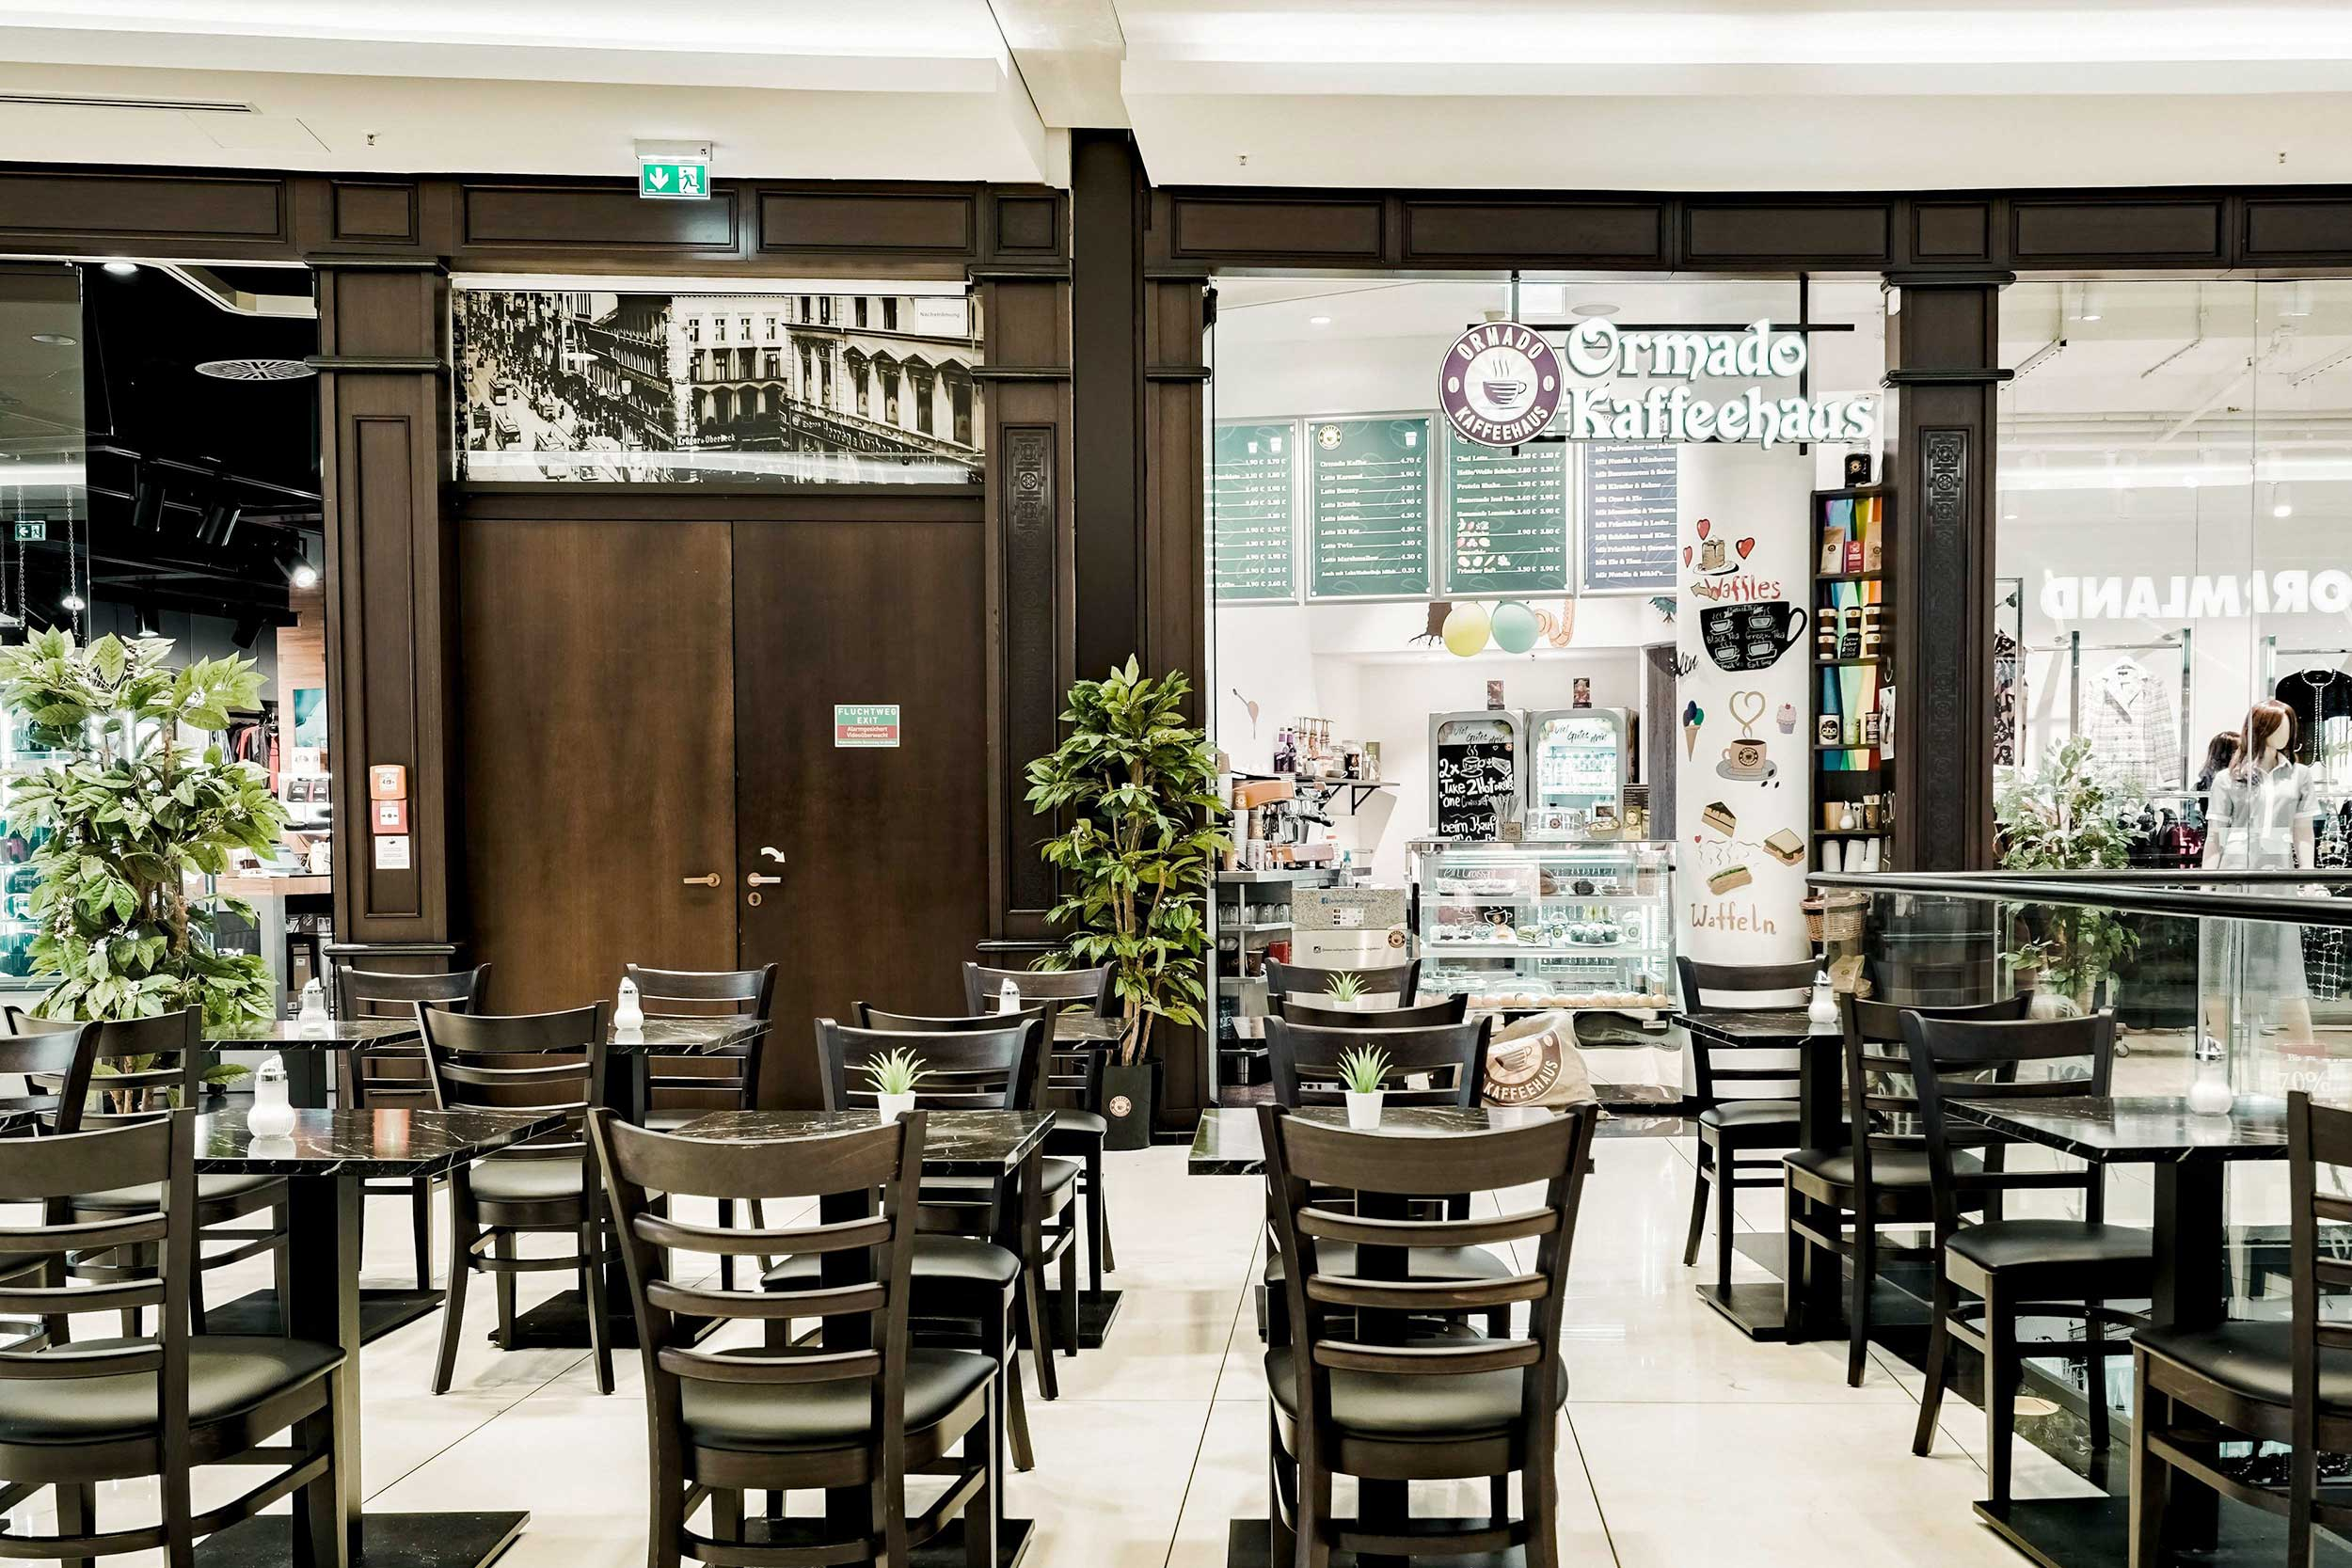 Ormado Kaffeehaus in der Mall of Berlin